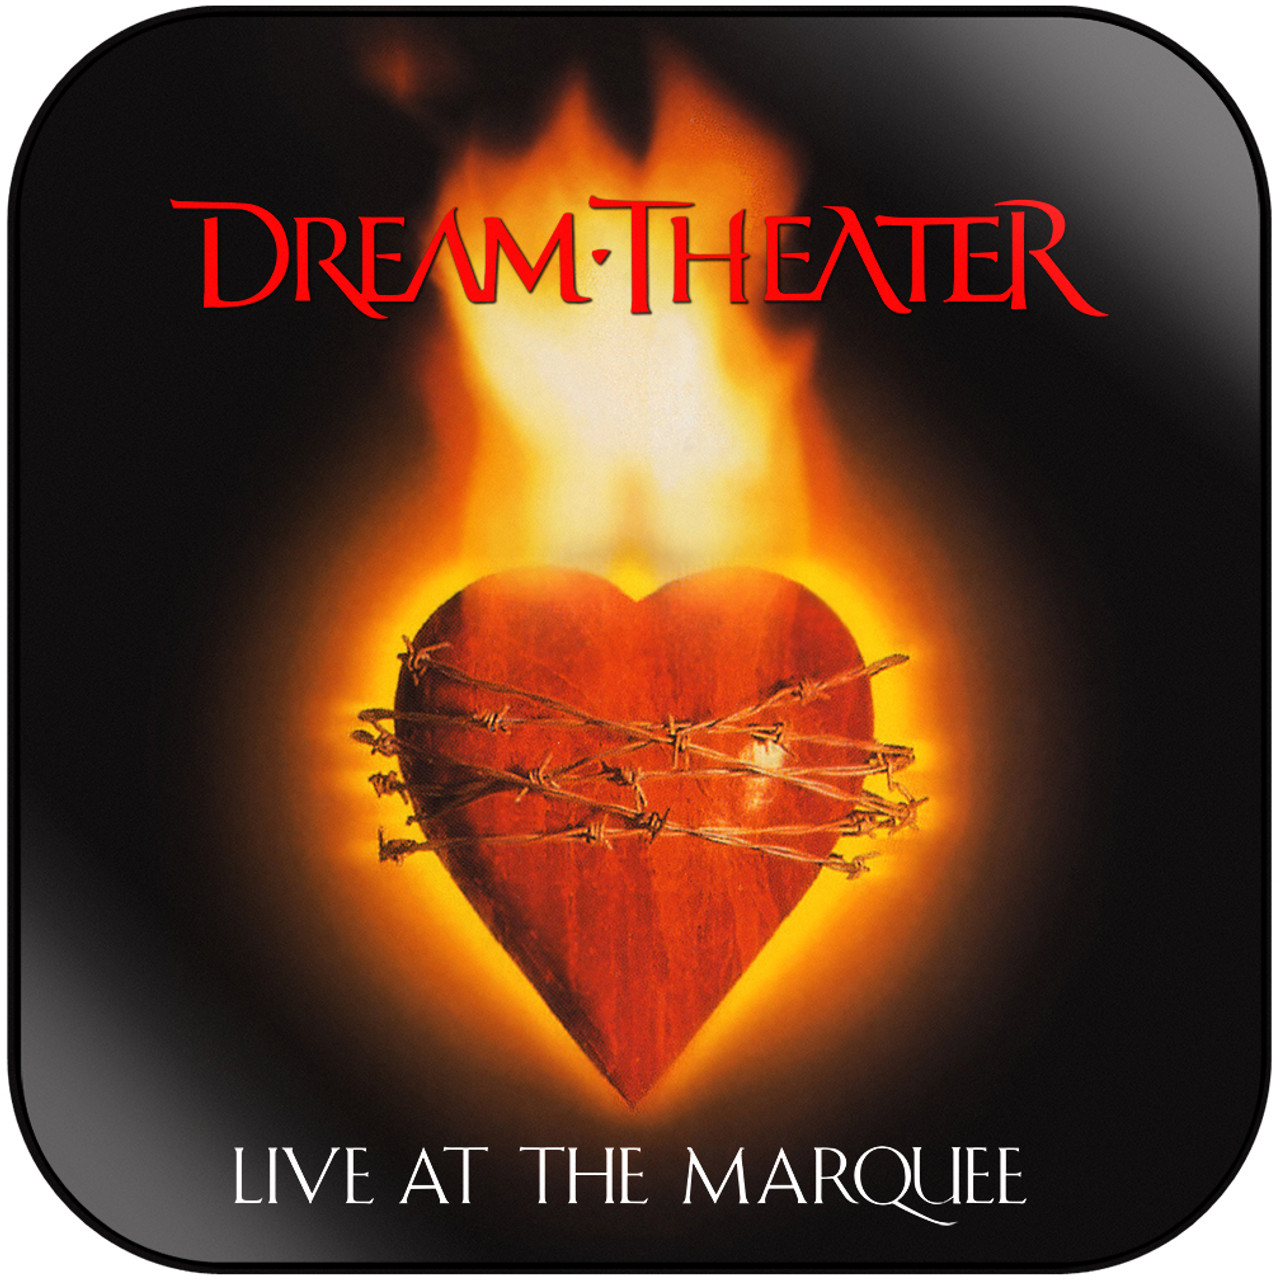 794be7445fb Dream Theater - Live At The Marquee Album Cover Sticker